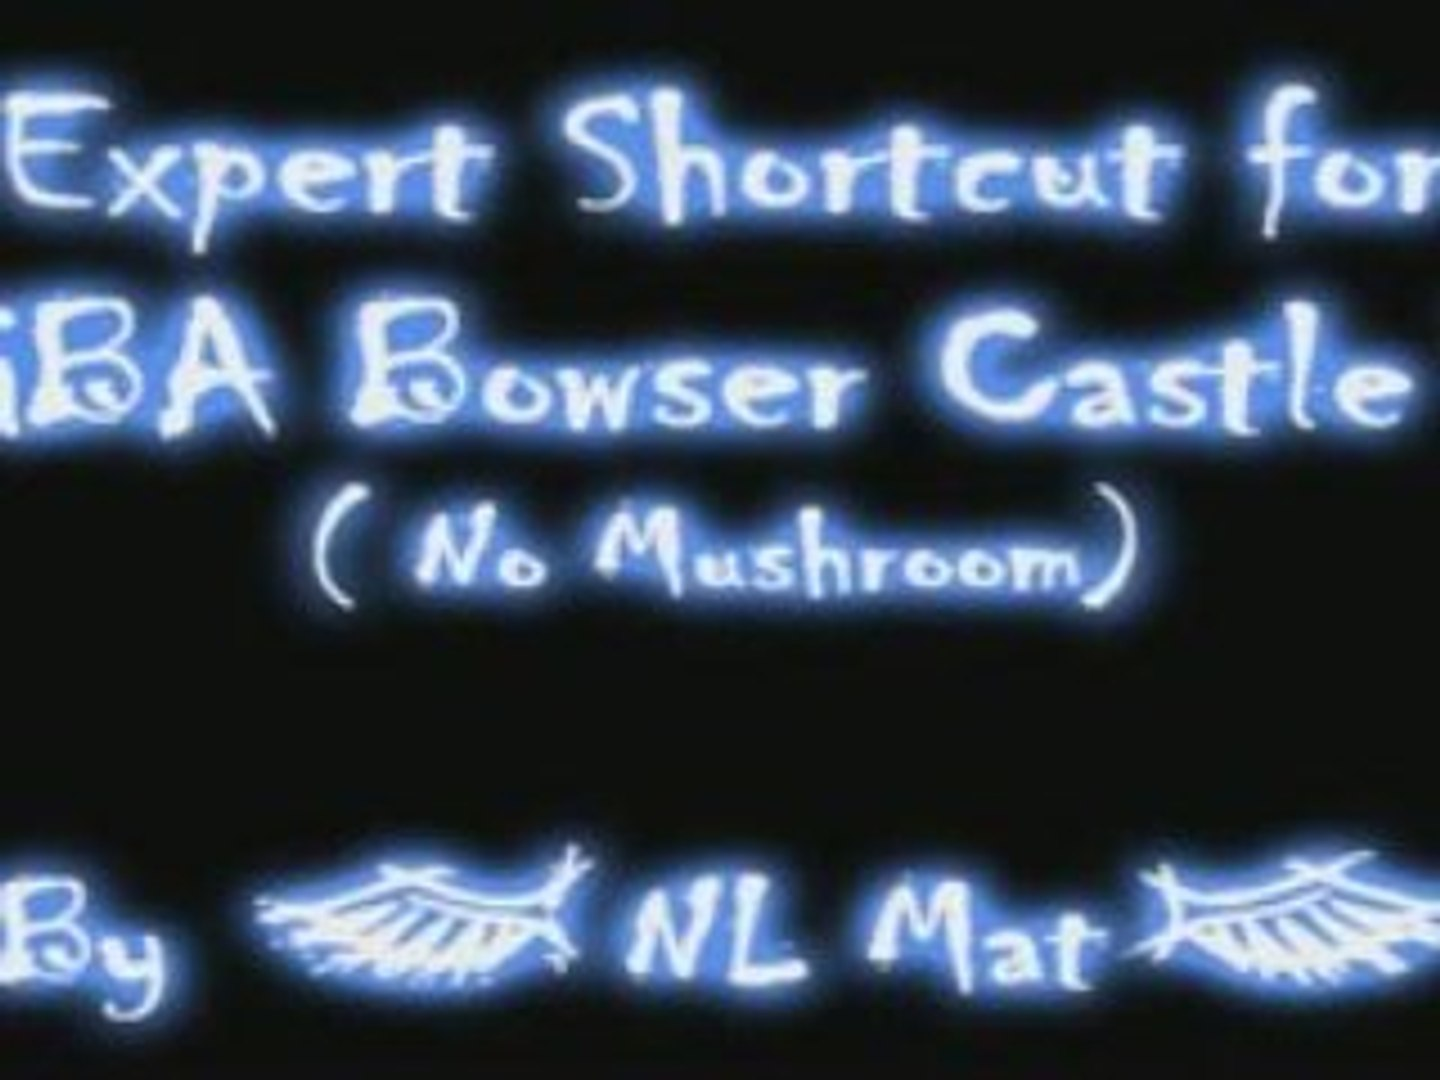 Mario Kart Wii Nex Expert Shortcut For Gba Bowser Castle 3